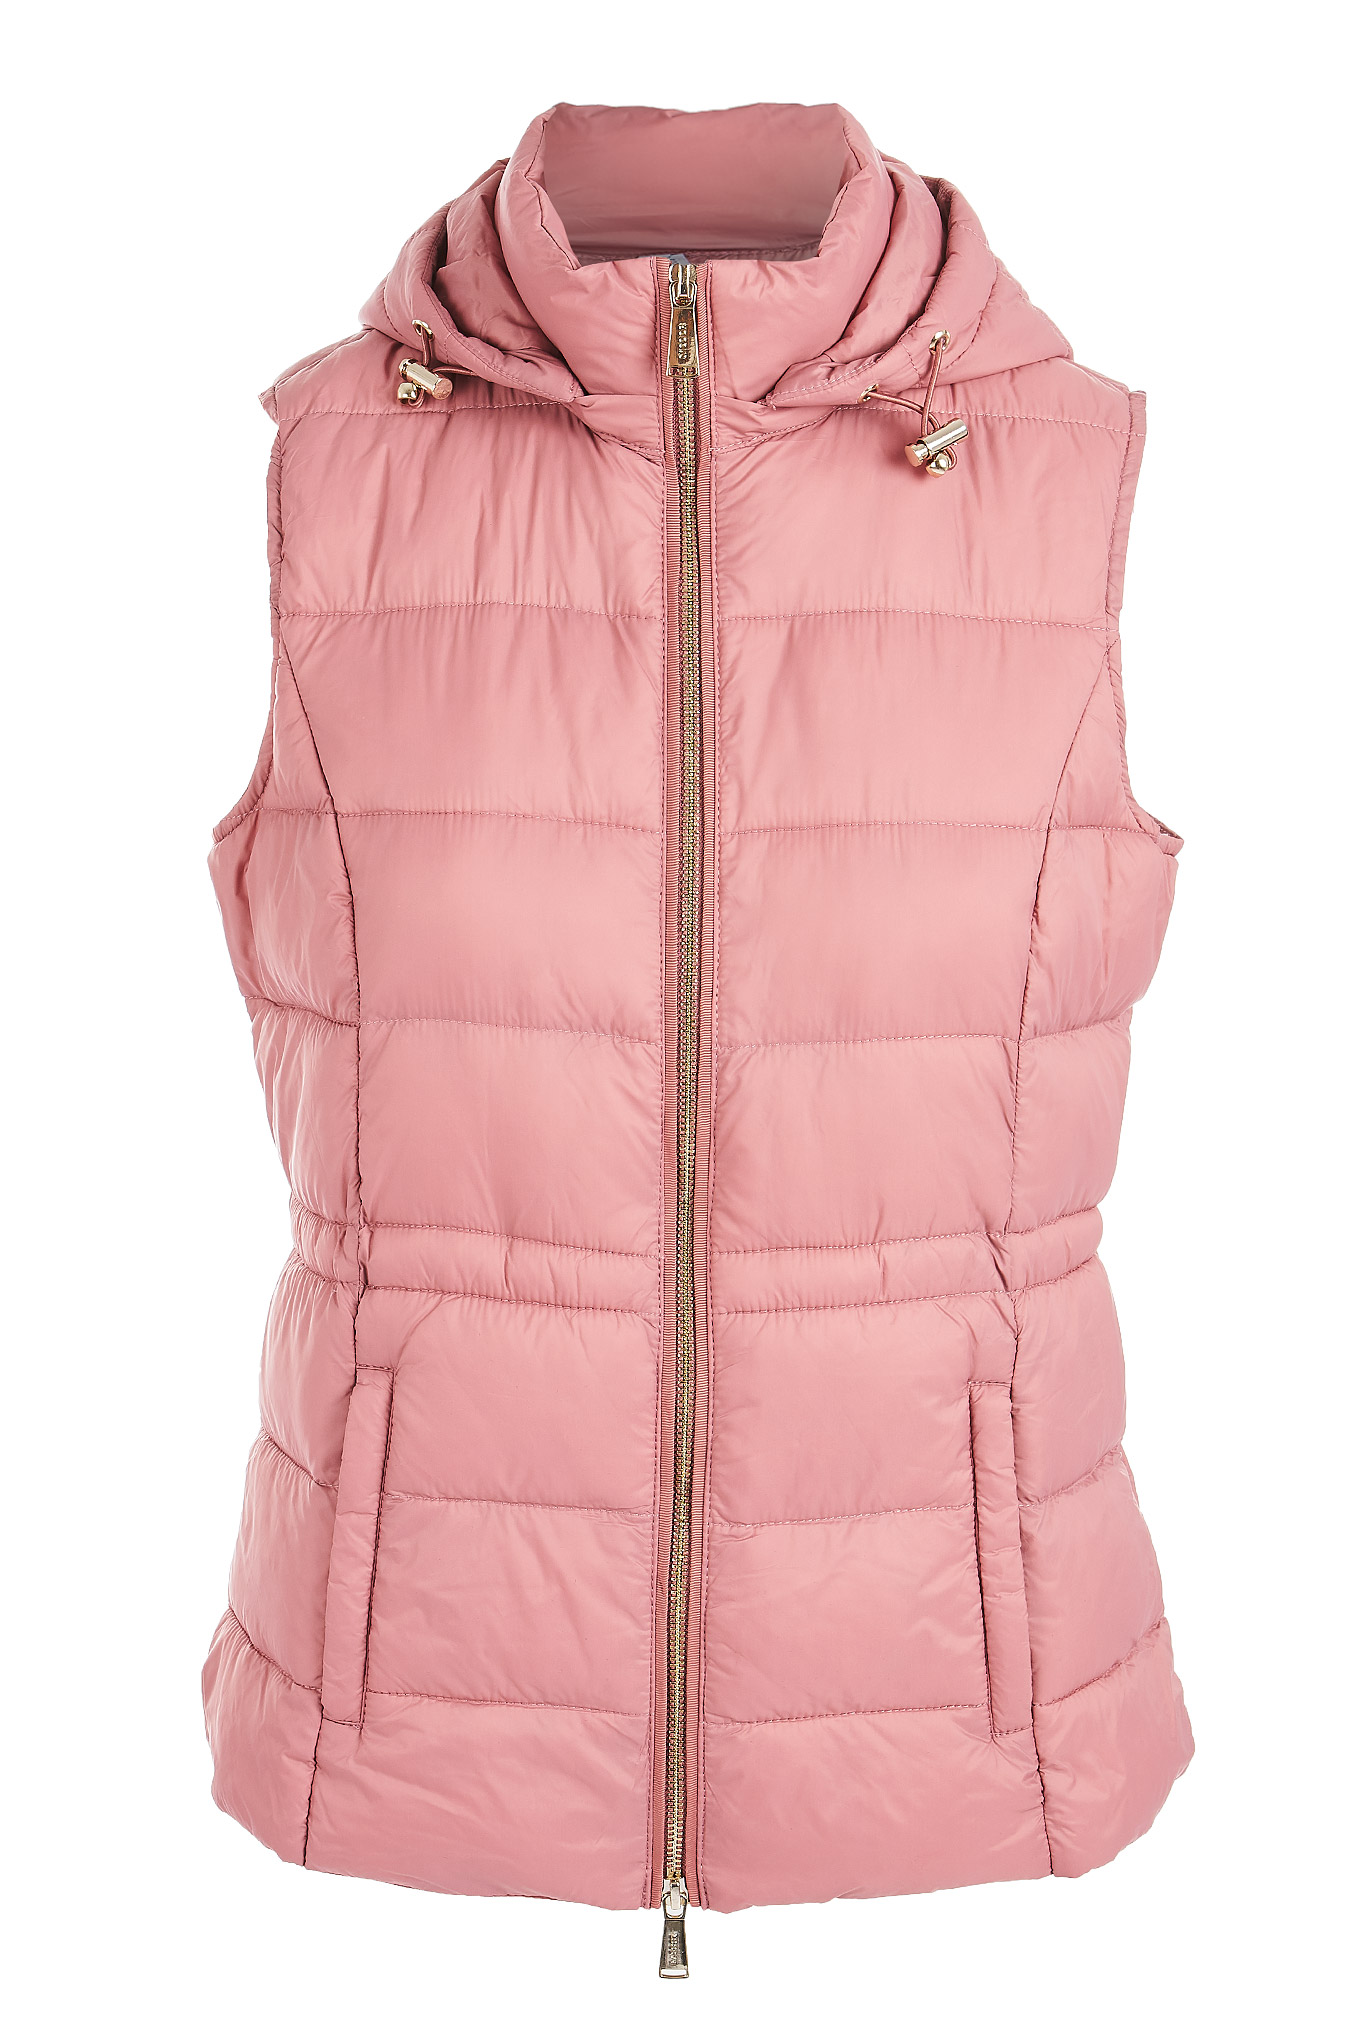 Waist Coat Pink Casual Woman